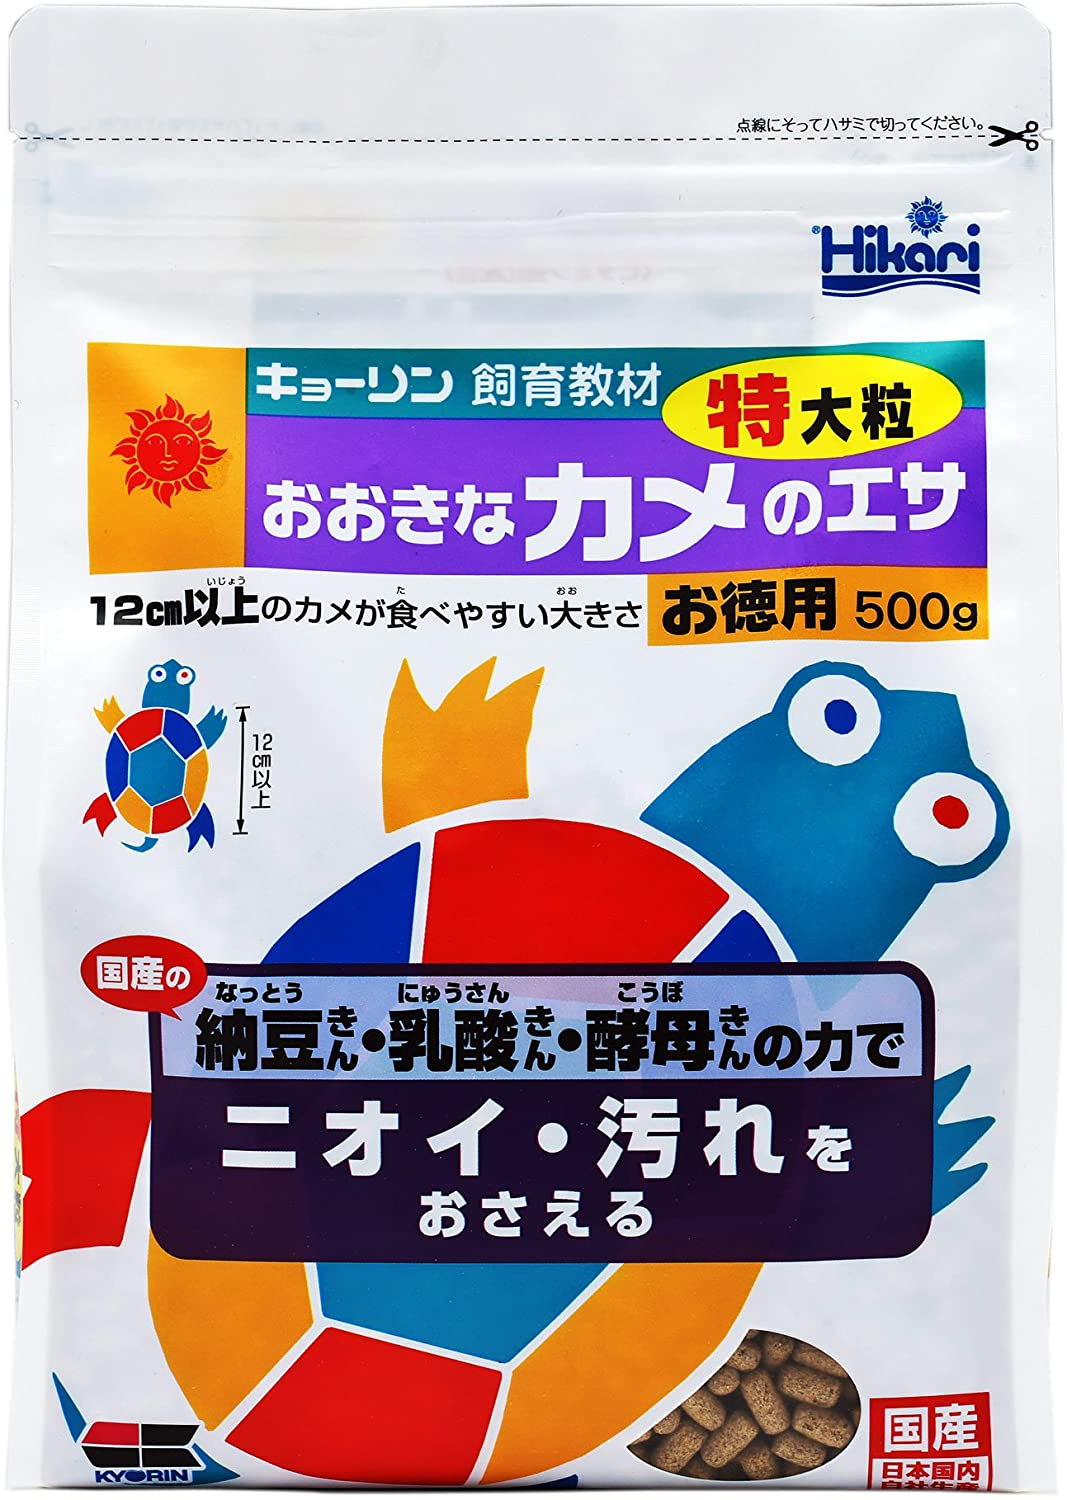 KYORIN Hikari Turtle Food (Extra Large) [500g] (Japan Import)